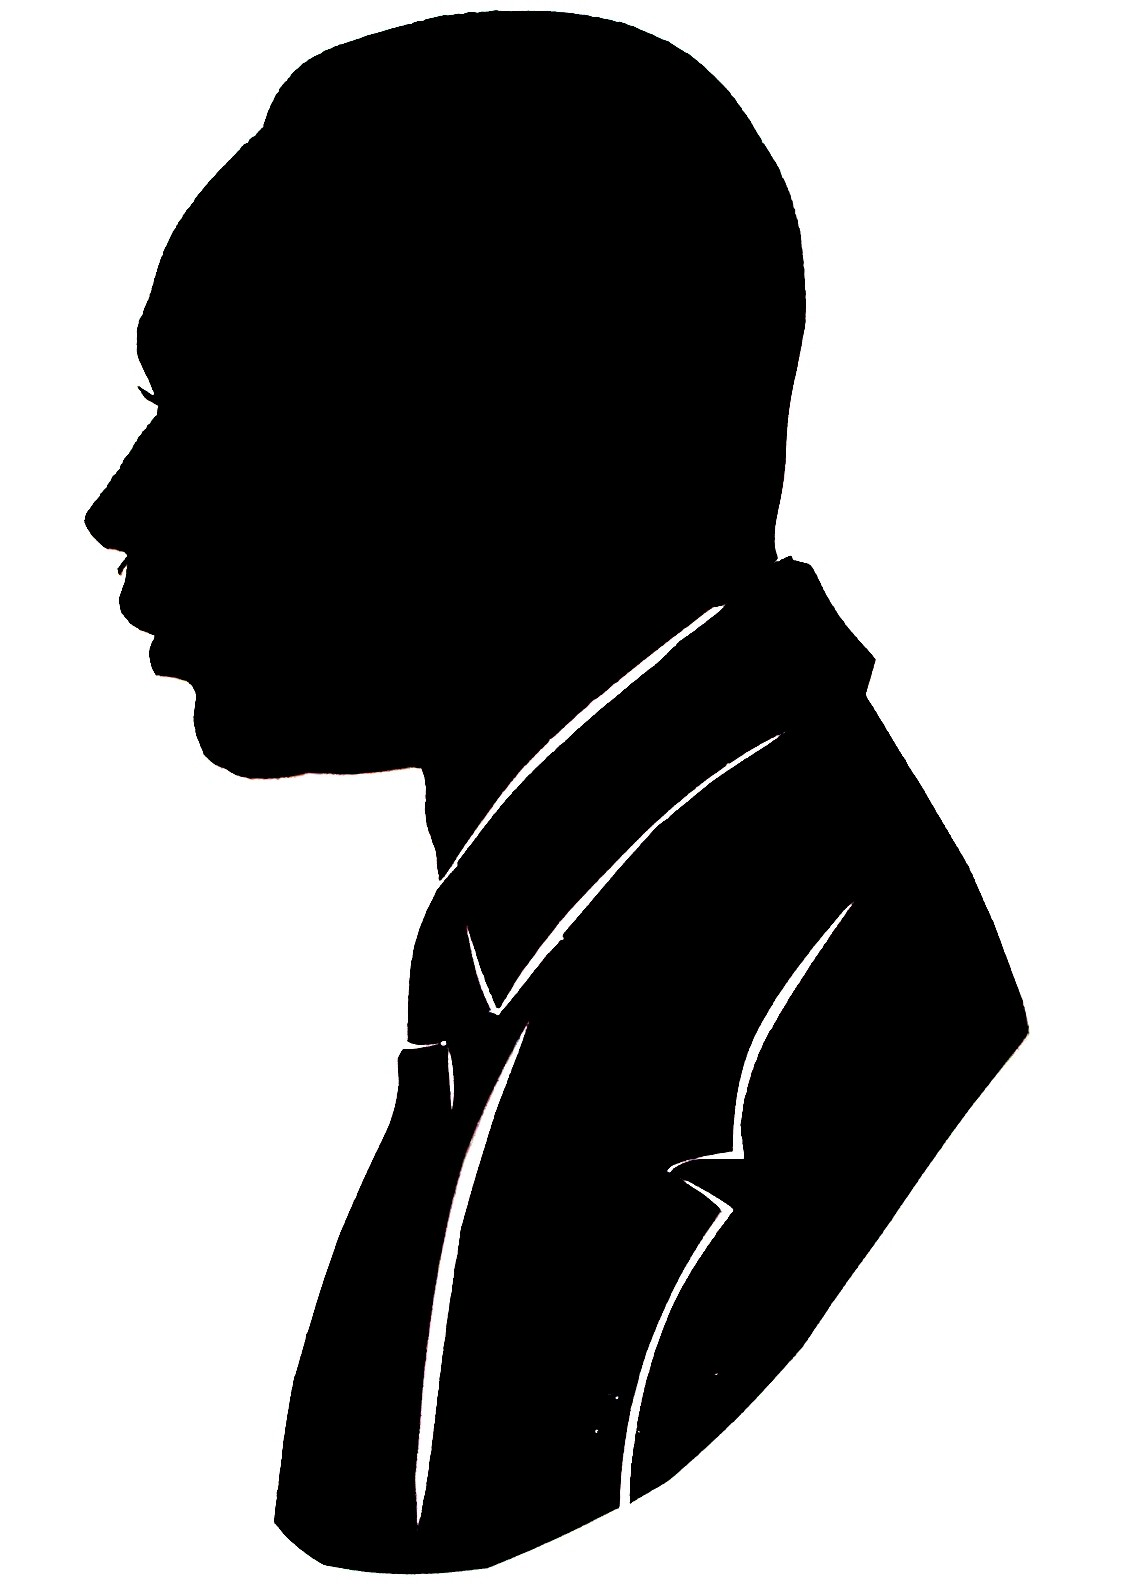 12 Famous People Silhouette Graphics Images